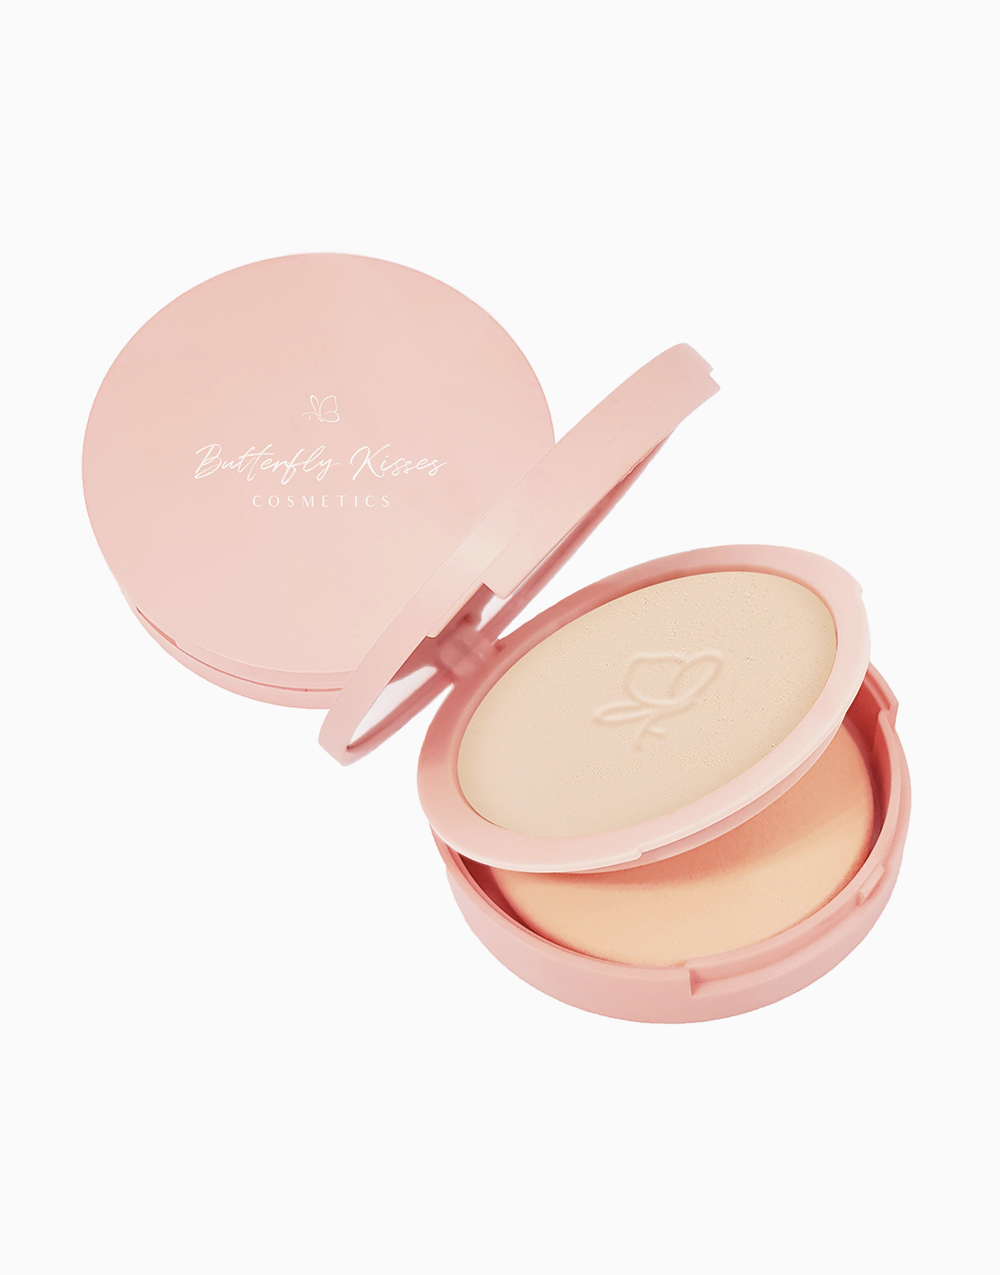 Skin Perfecting Matte Pressed Powder by Butterfly Kisses   Fair